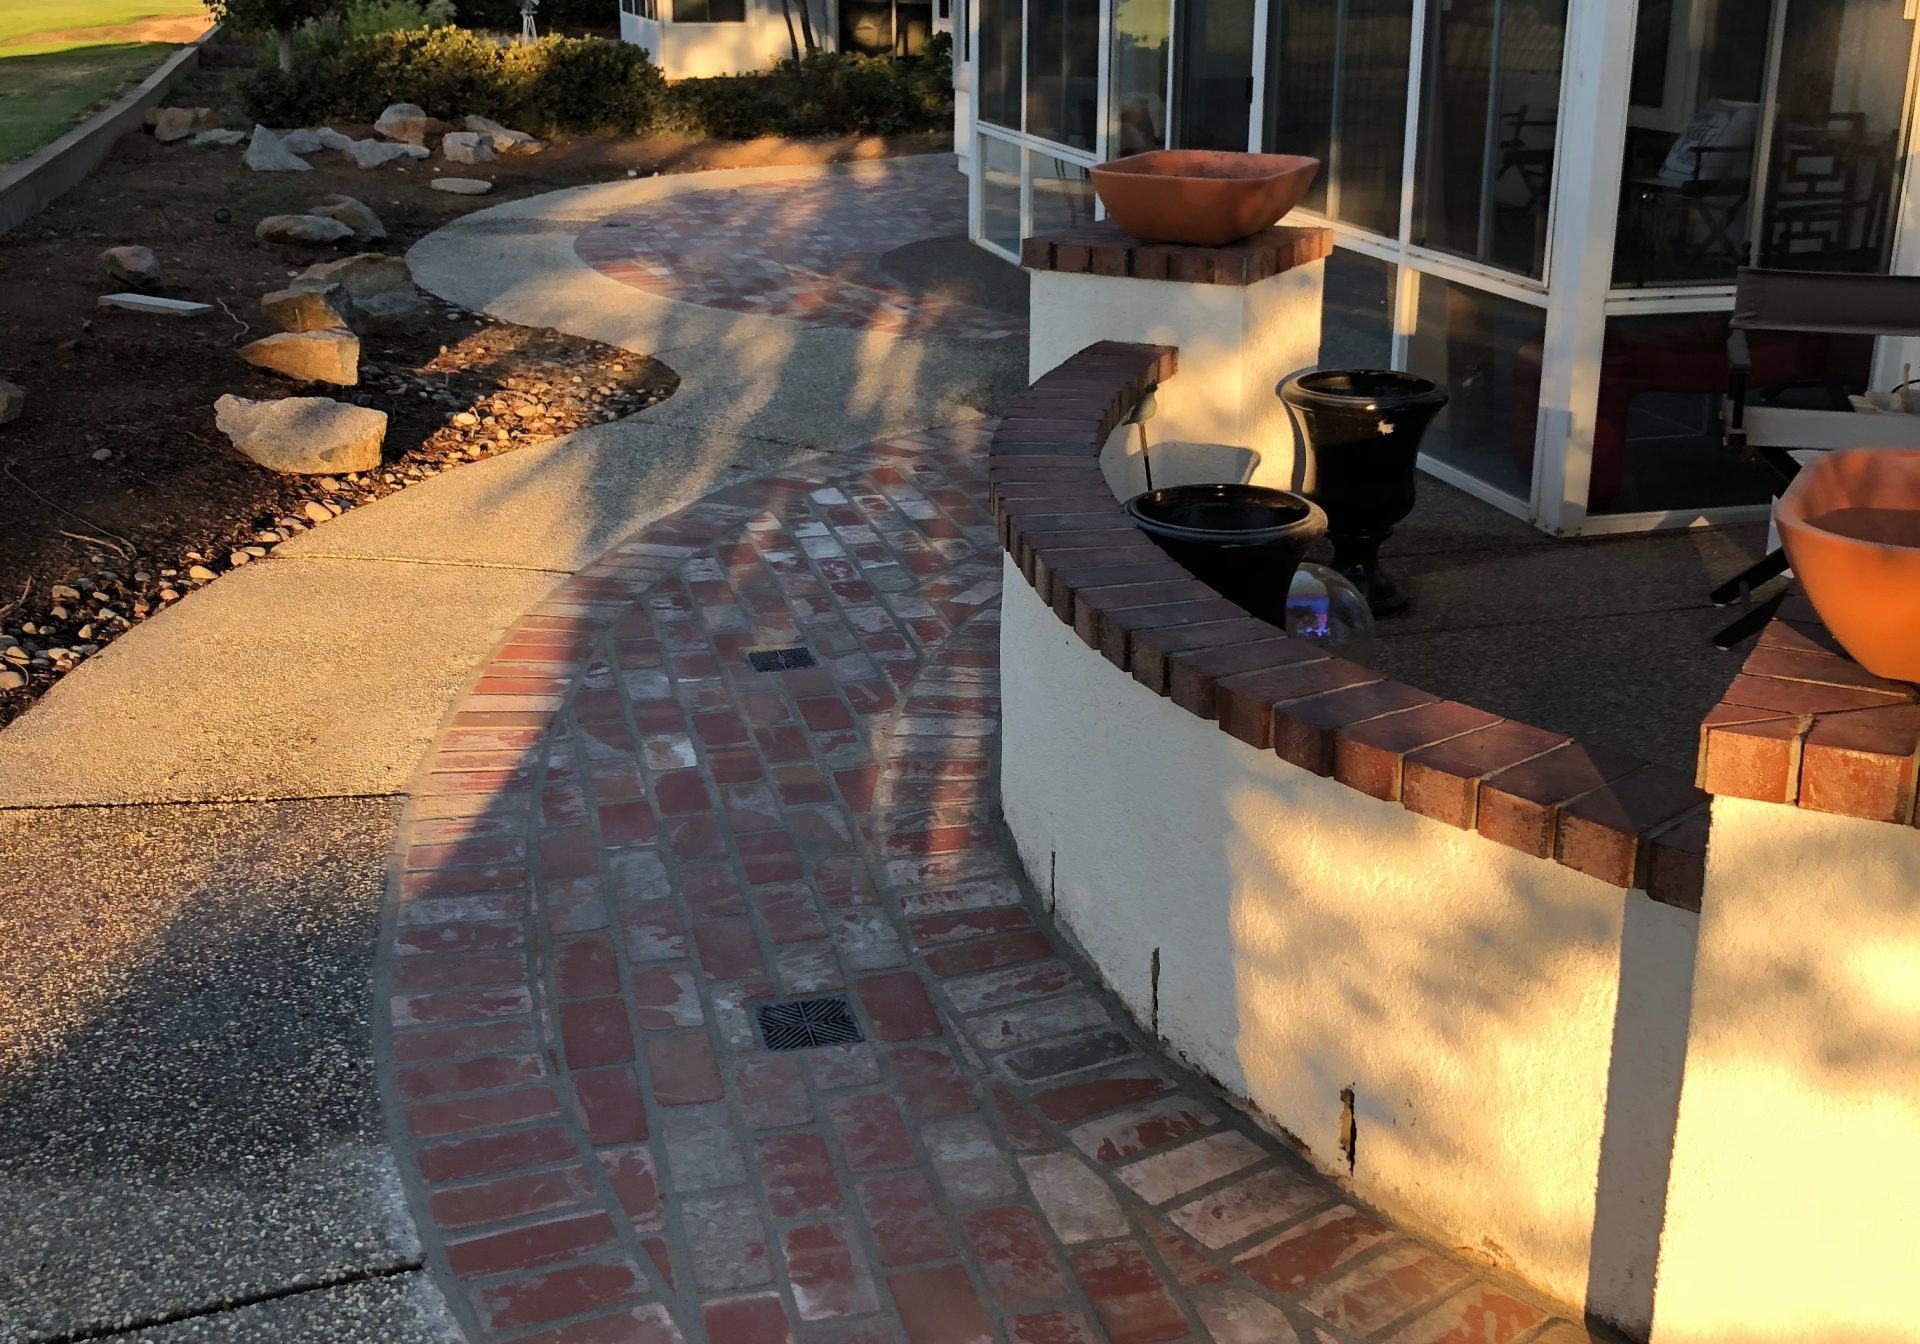 The photo shows the finished concrete work in Escondido, CA.